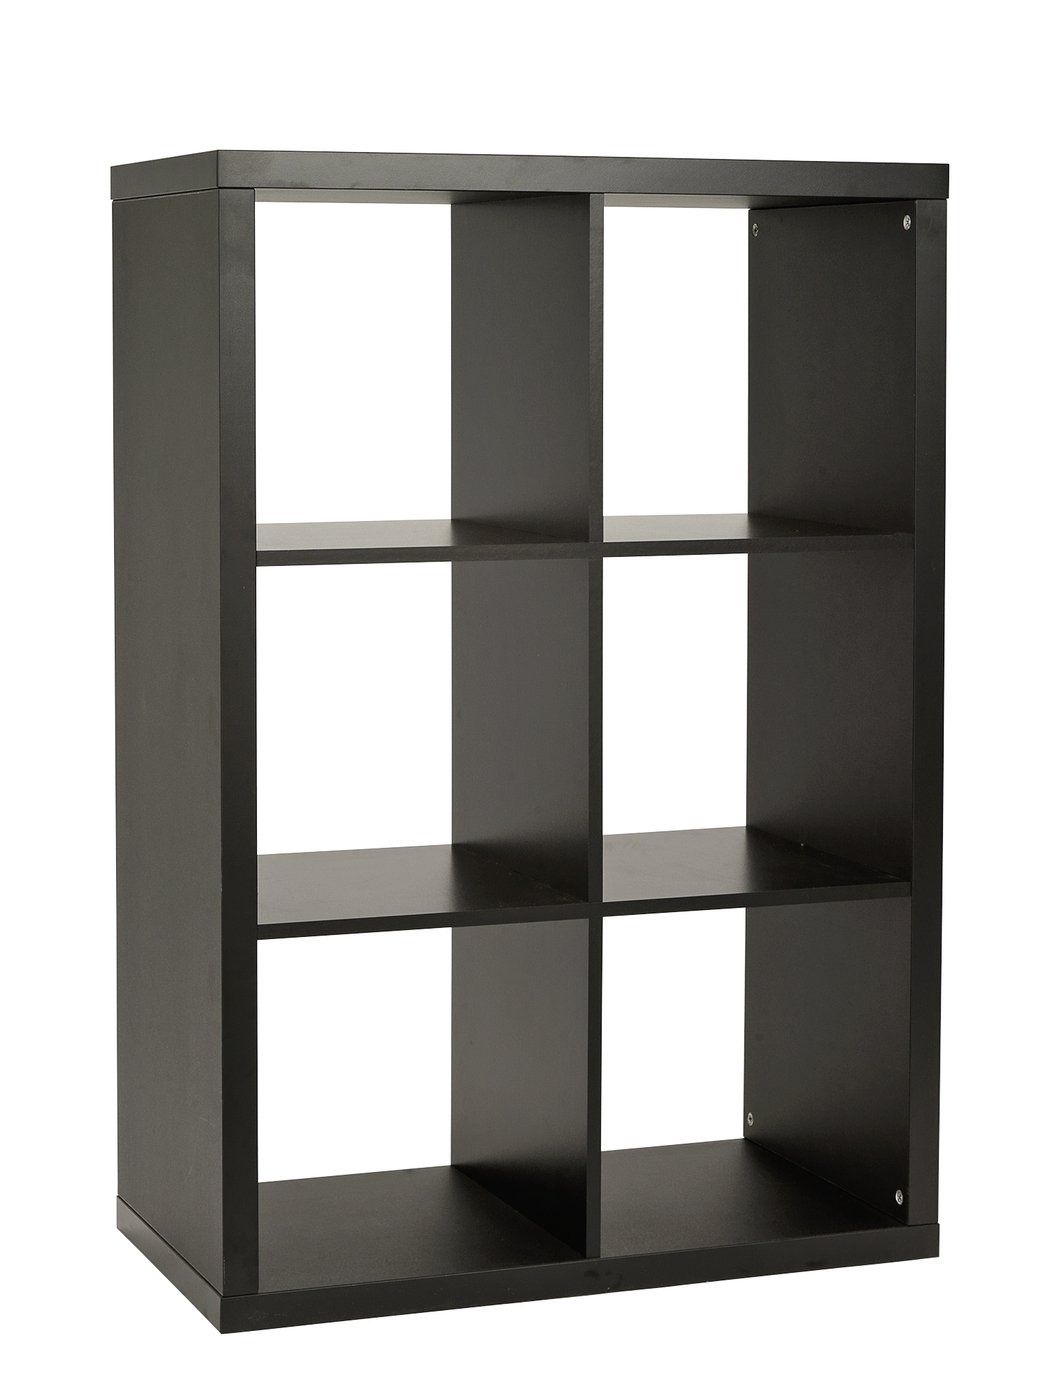 cube storage shelves black baskets blogs workanyware co uk u2022 rh blogs workanyware co uk